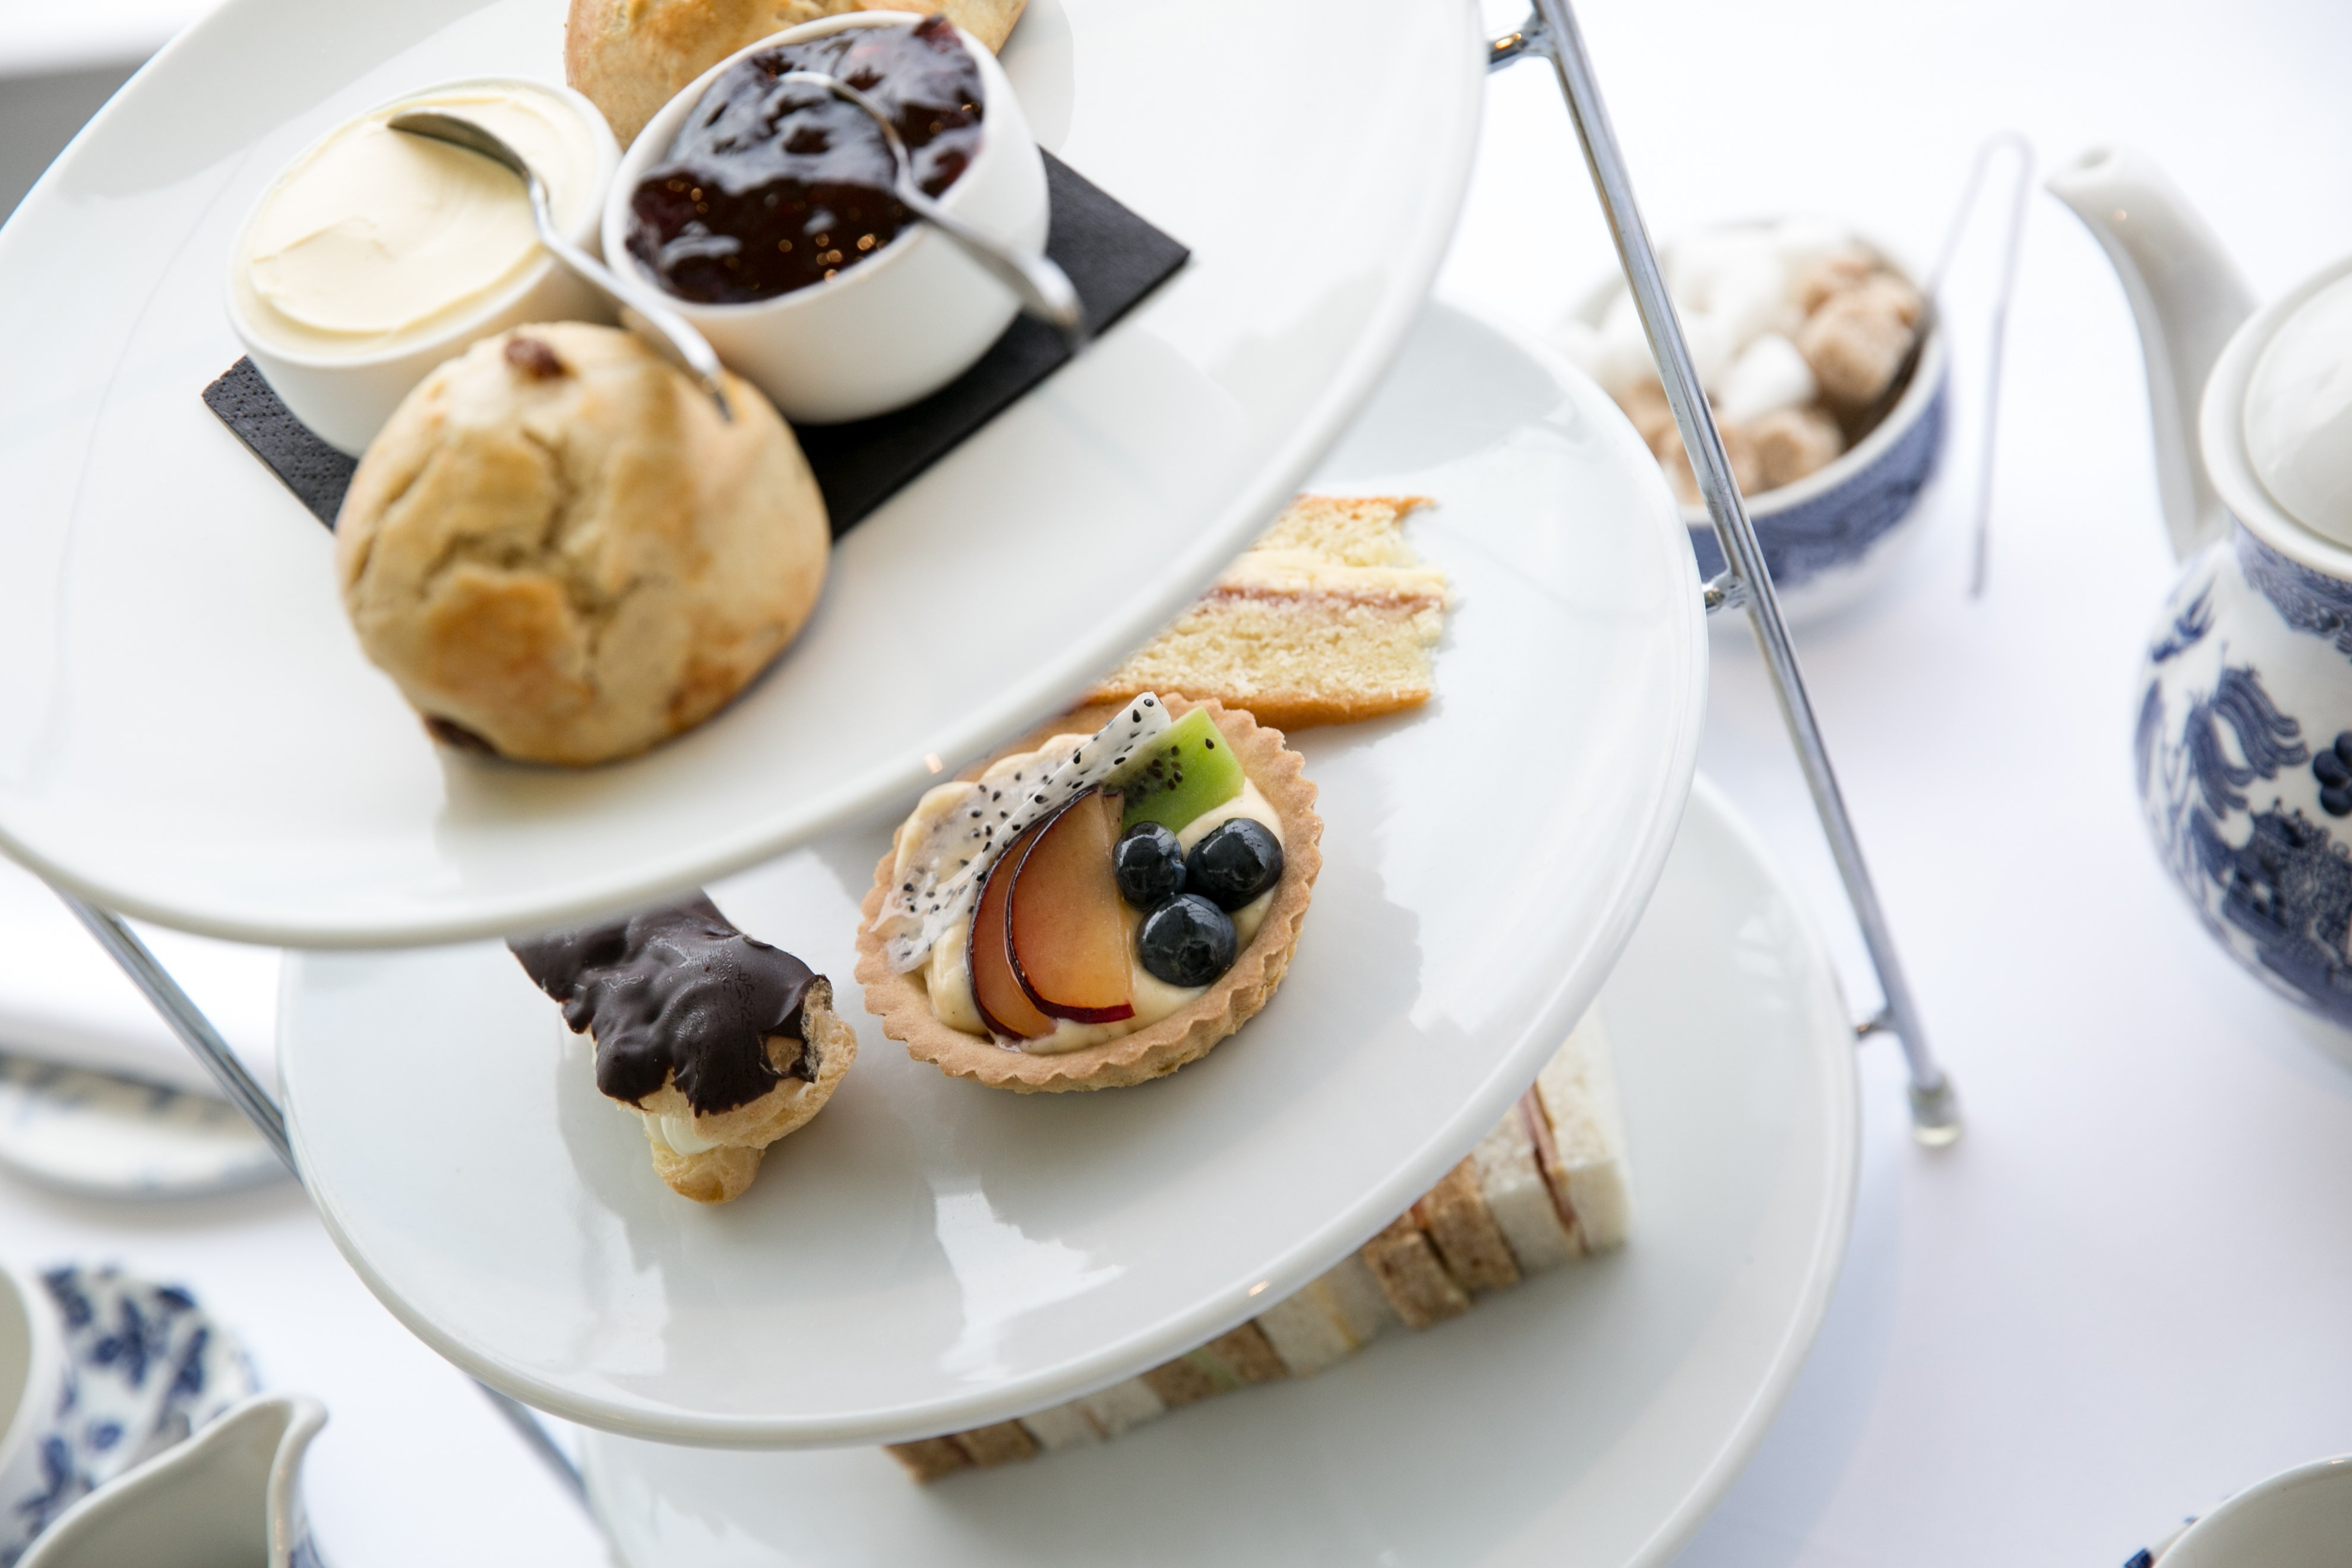 Afternoon Tea at the Midland Hotel, Morecambe